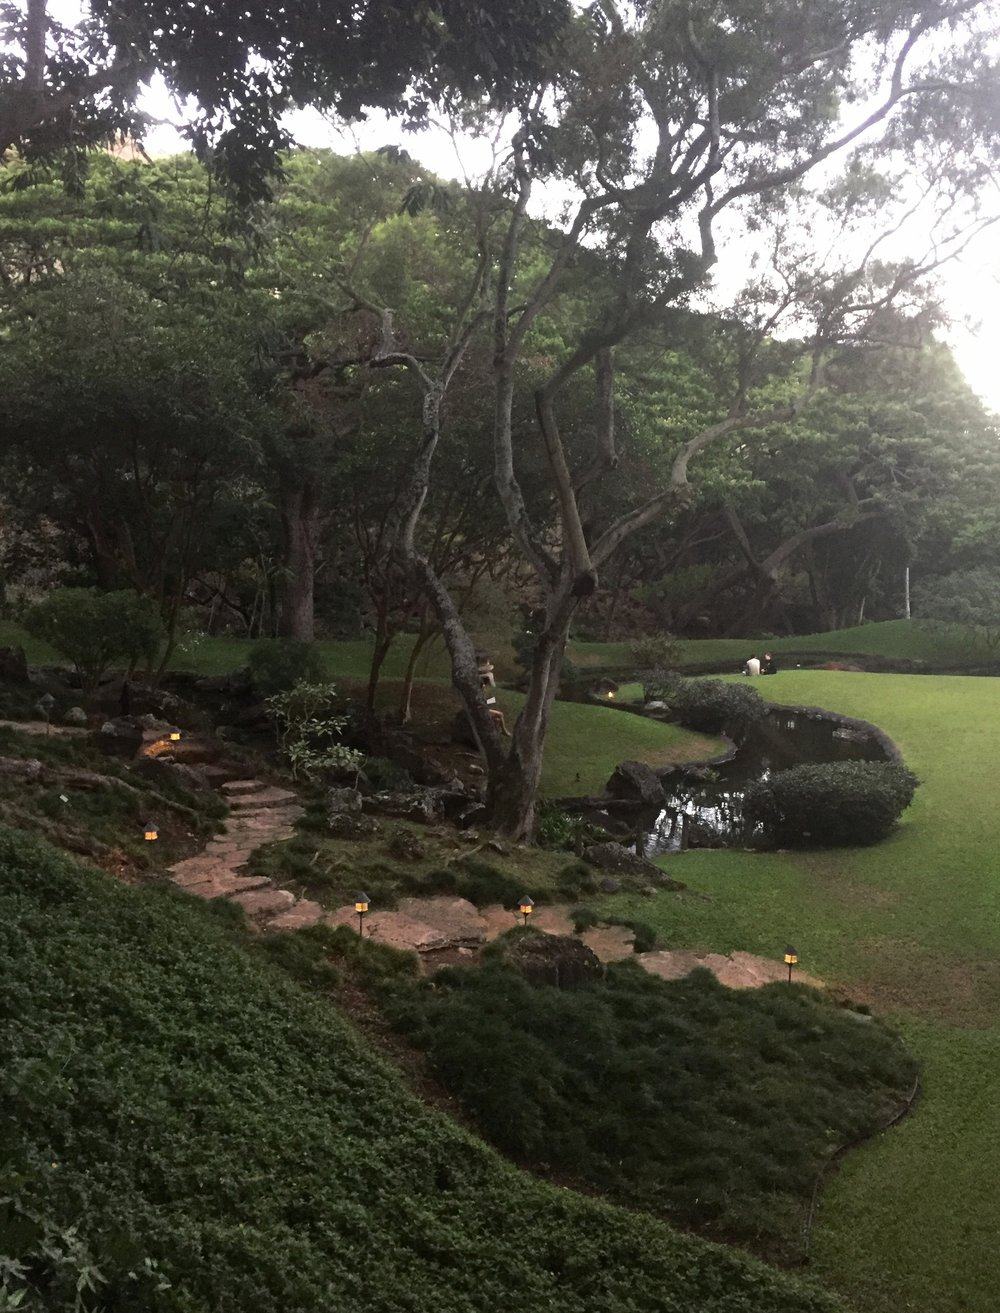 The Japanese Garden at the East West Center / University of Hawai'i